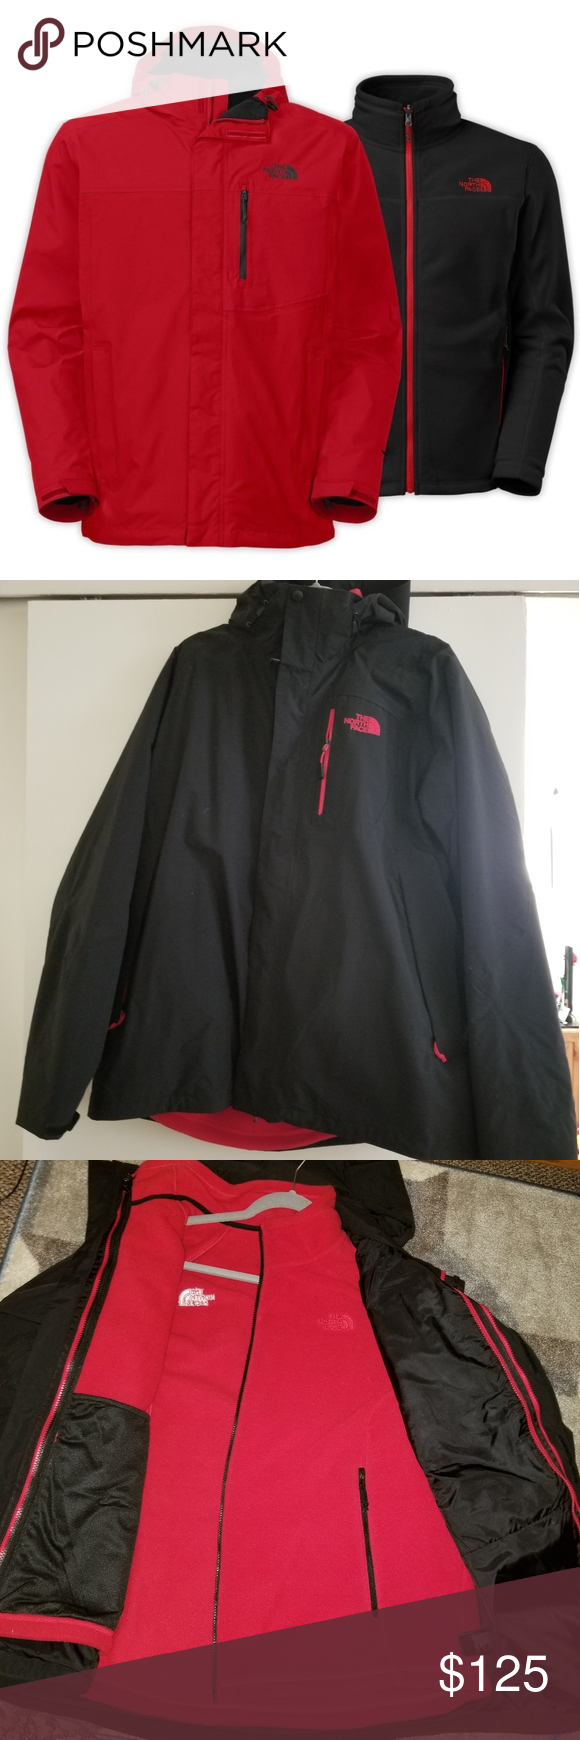 North Face 2 In 1 Multi Climate Men S Jacket North Face Brand Black North Face Jackets [ 1740 x 580 Pixel ]